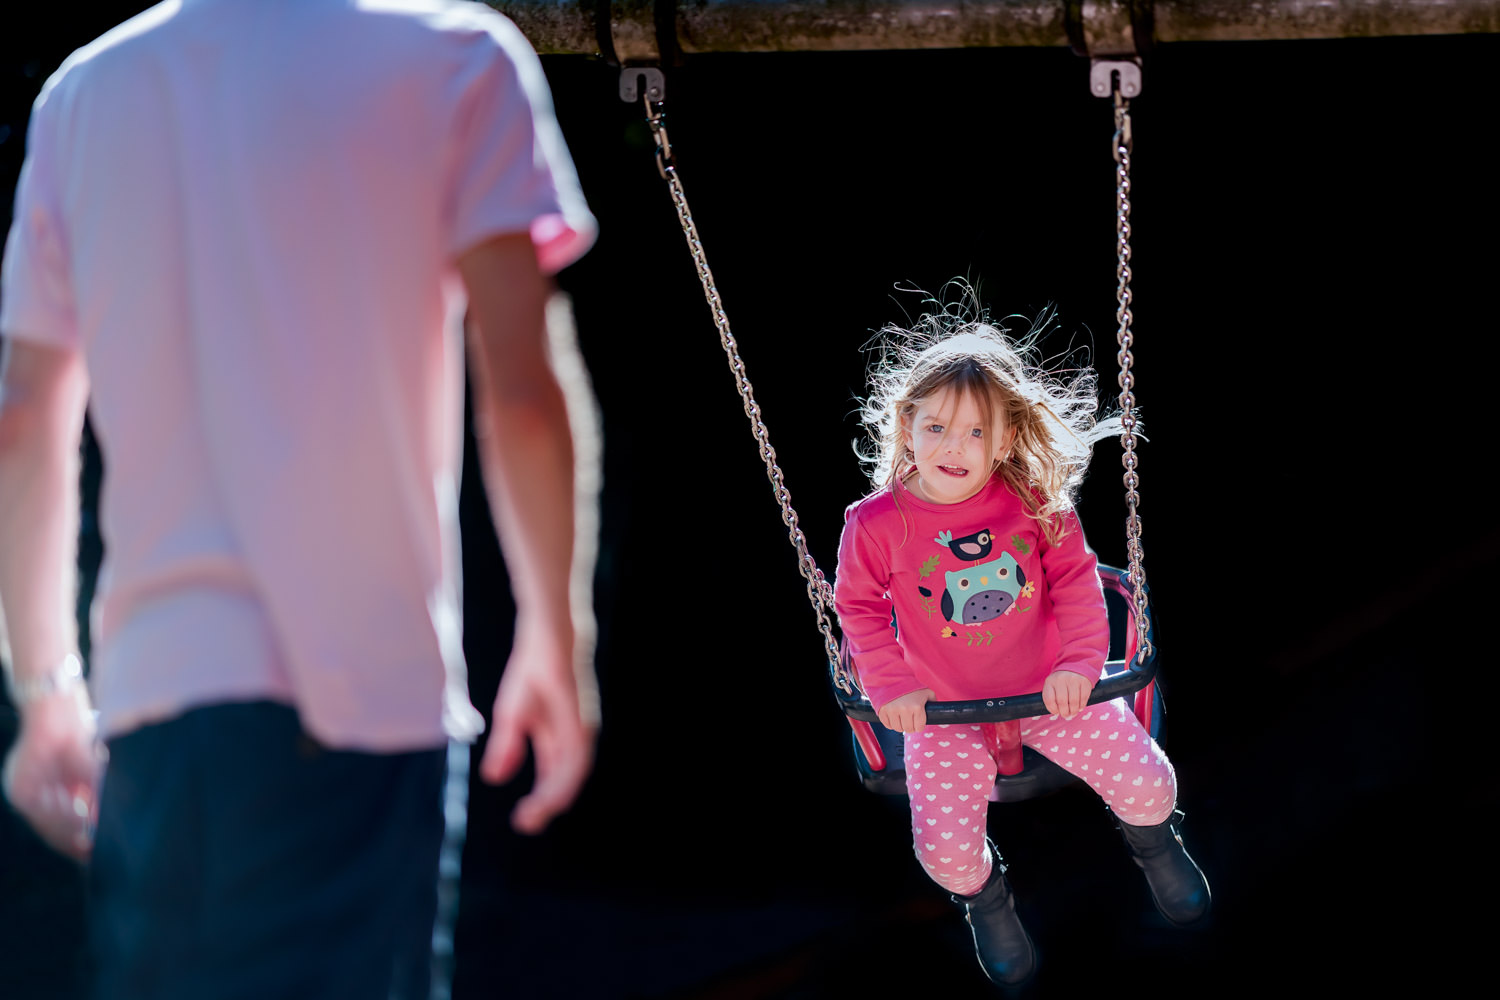 Girl on swing with hair backlight